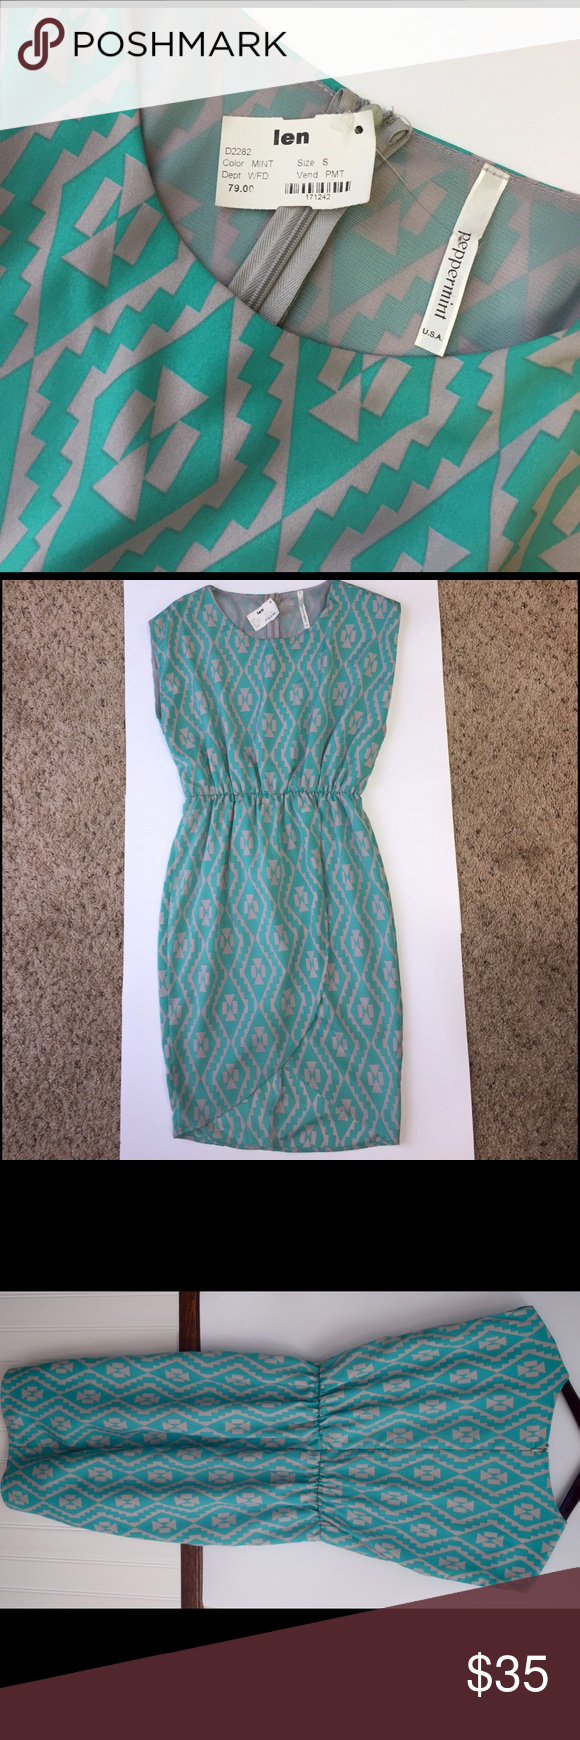 Brand New Peppermint Classy Dress Never been worn mint and grey Aztec patterned Peppermint dress bought at Len for $79. 100% polyester. Super cute and easy to dress up or wear down. Comment with any questions you may have! Peppermint Dresses Midi